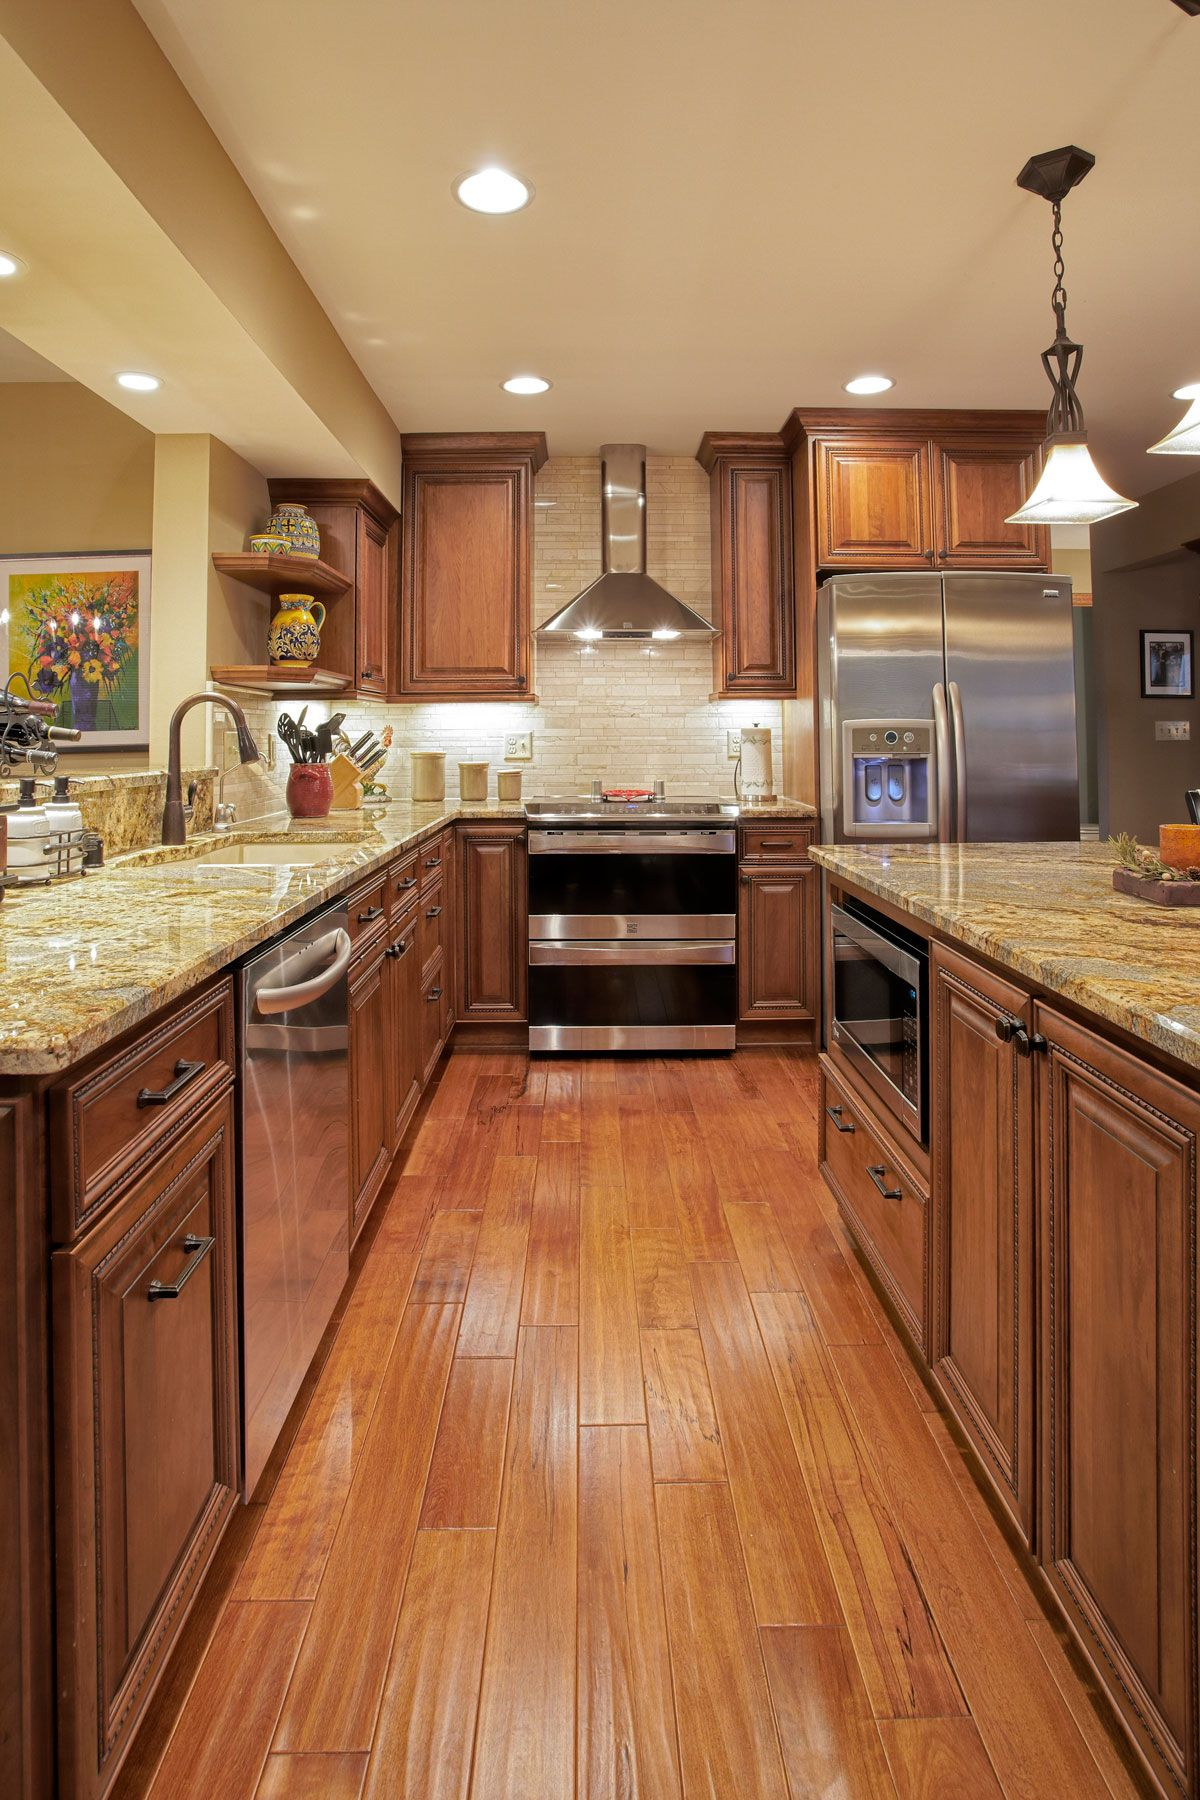 Woods In Warm Rich Medium Brown Tones Were Used To Great Success In This Kitchen Remodel In Germ Brown Kitchen Cabinets Wooden Kitchen Cabinets Brown Kitchens